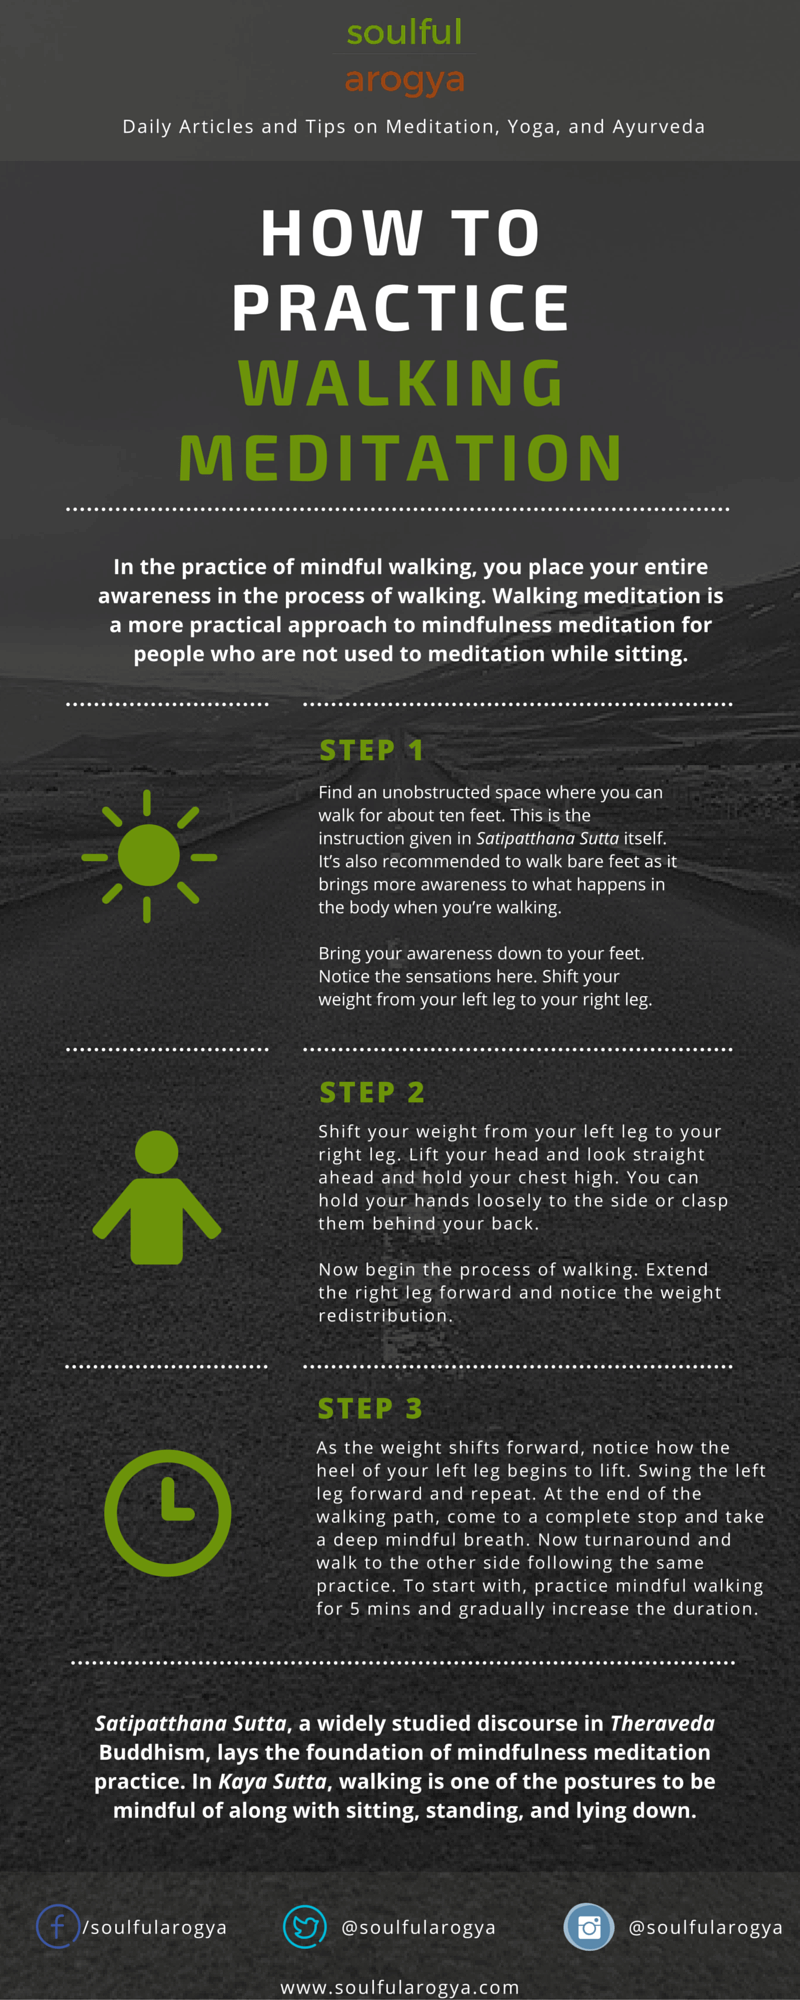 How-to-Practice-Walking-Meditation-Infographic-plaza